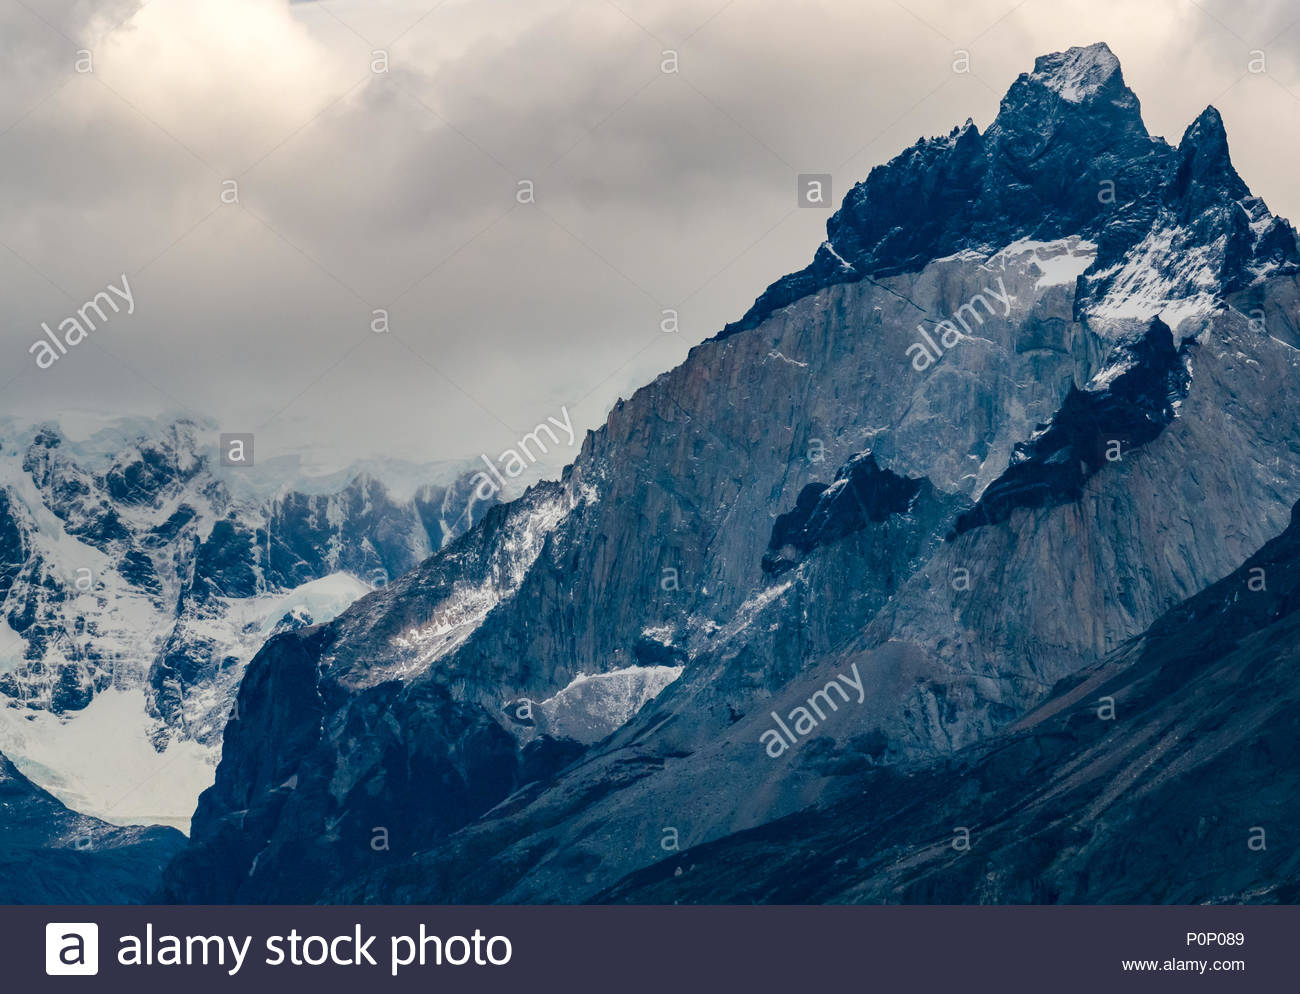 Granite intrusion with hornblende rock, Paine Horns mountain peaks of Torres del Paine National Park, Patagonia, Chile, South America - Stock Image